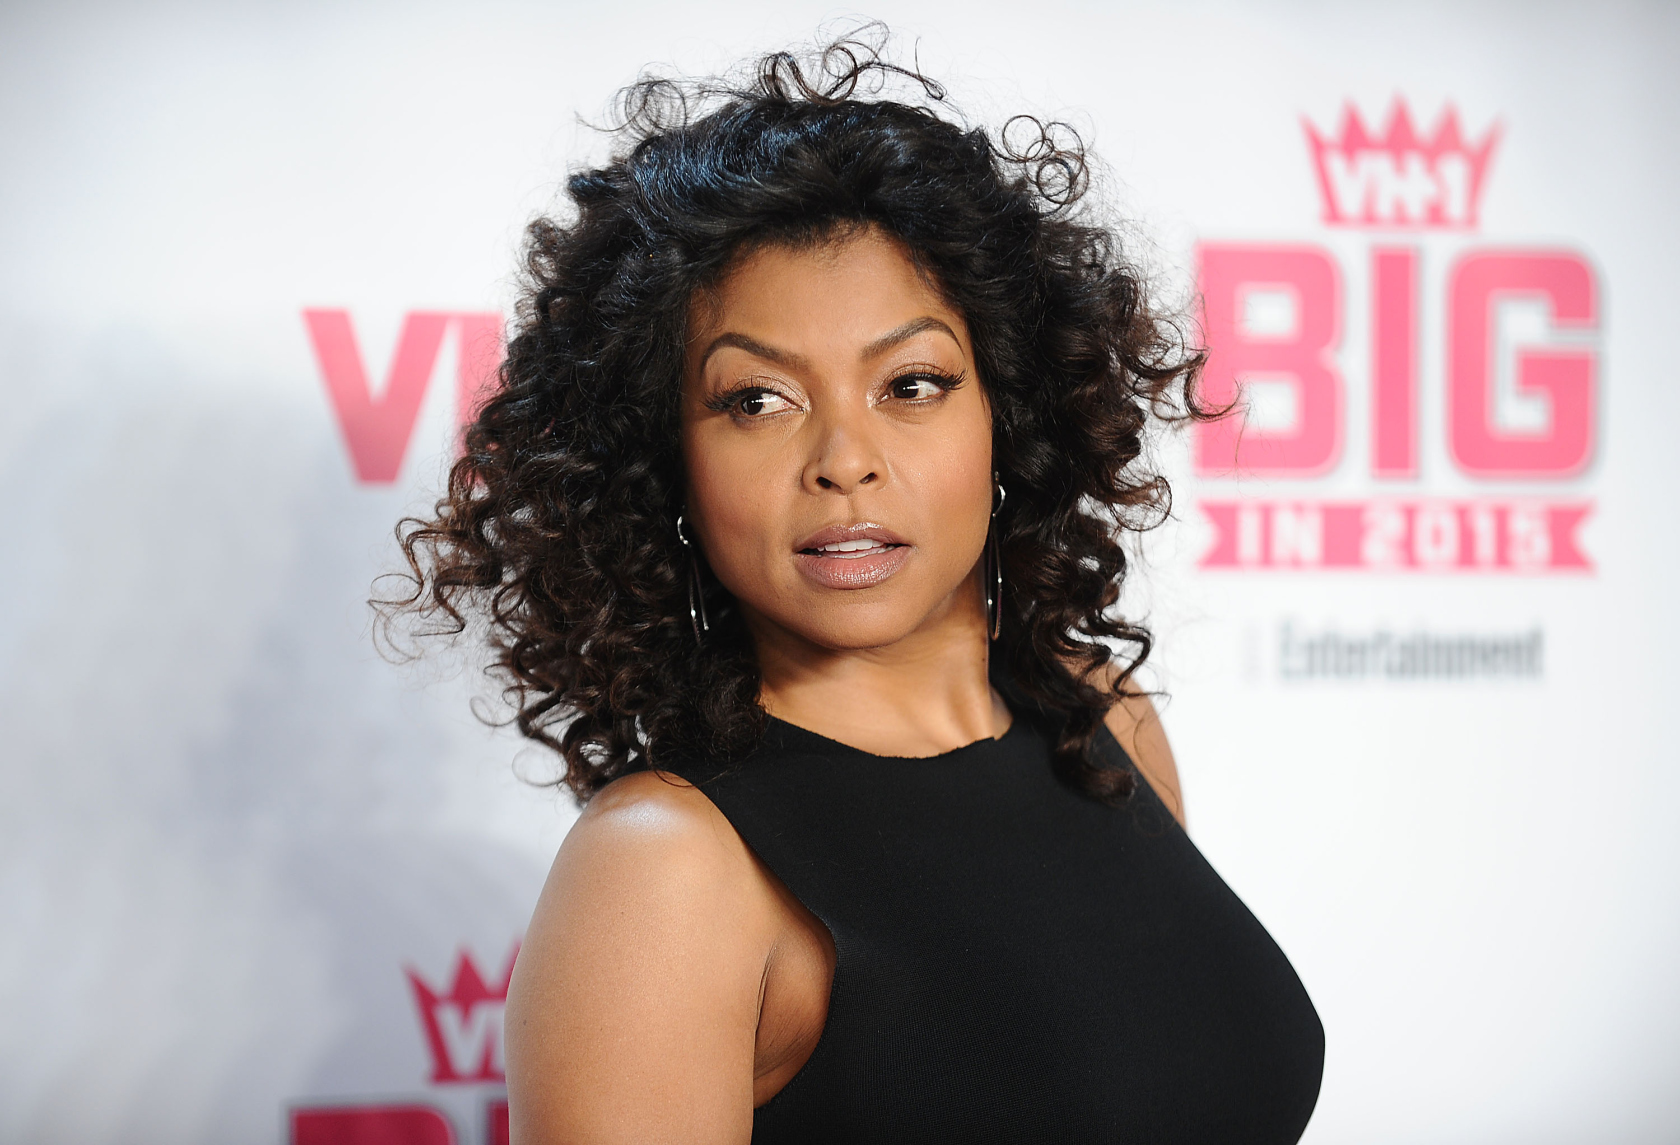 WEST HOLLYWOOD, CA - NOVEMBER 15: Actress Taraji P. Henson attends the VH1 Big In 2015 with Entertainment Weekly Awards at Pacific Design Center on November 15, 2015 in West Hollywood, California. (Photo by Jason LaVeris/FilmMagic)